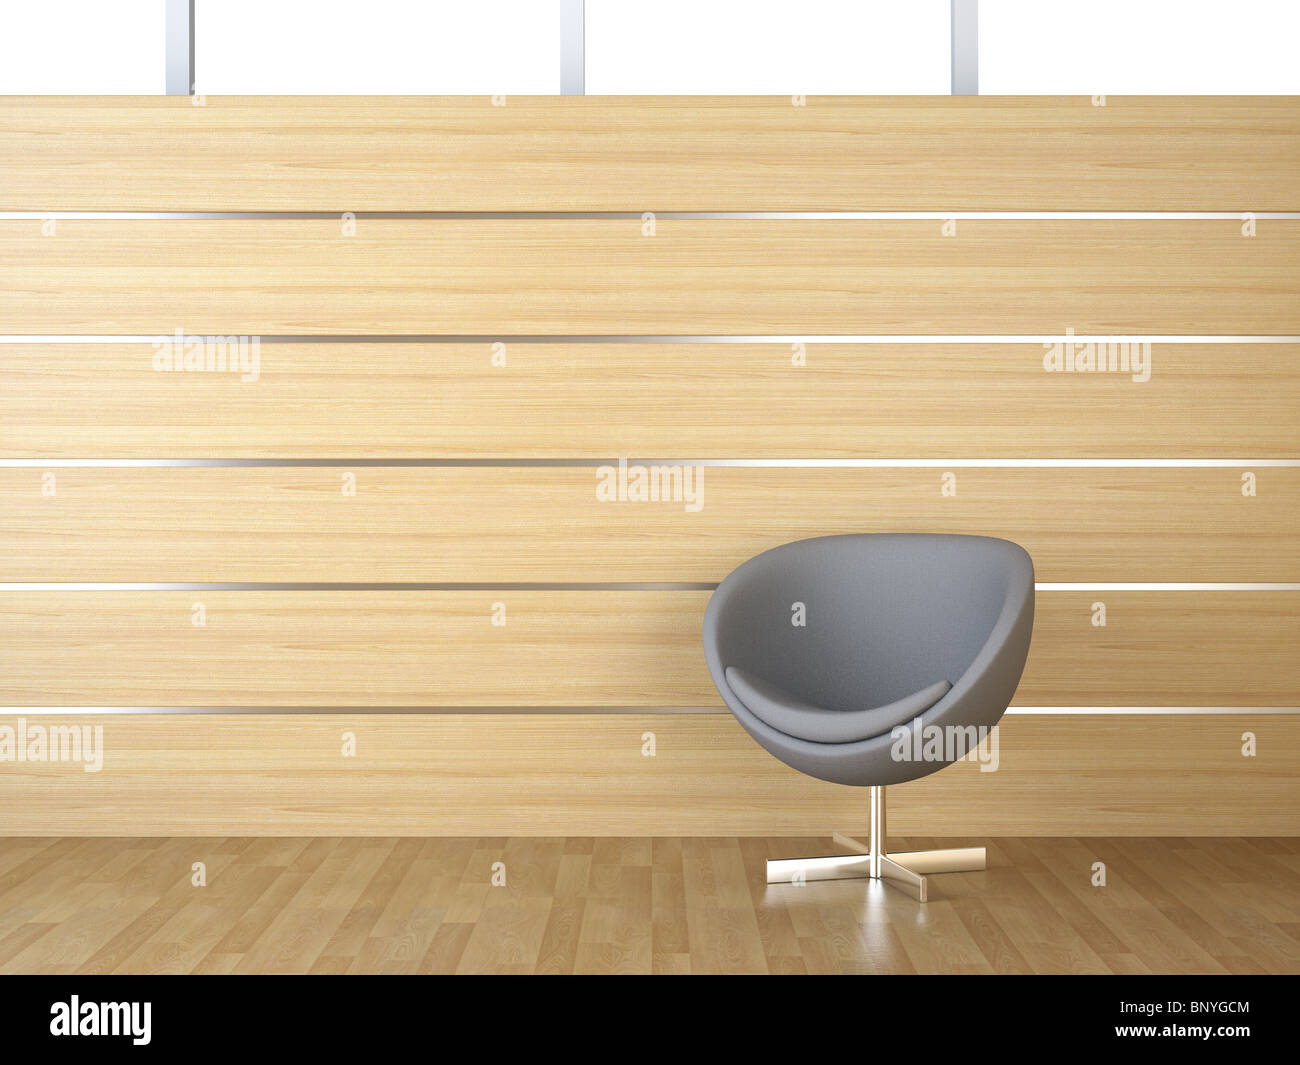 Interior Design Of Wood Cladding Wall With Gray Modern Armchair Stock Photo Alamy